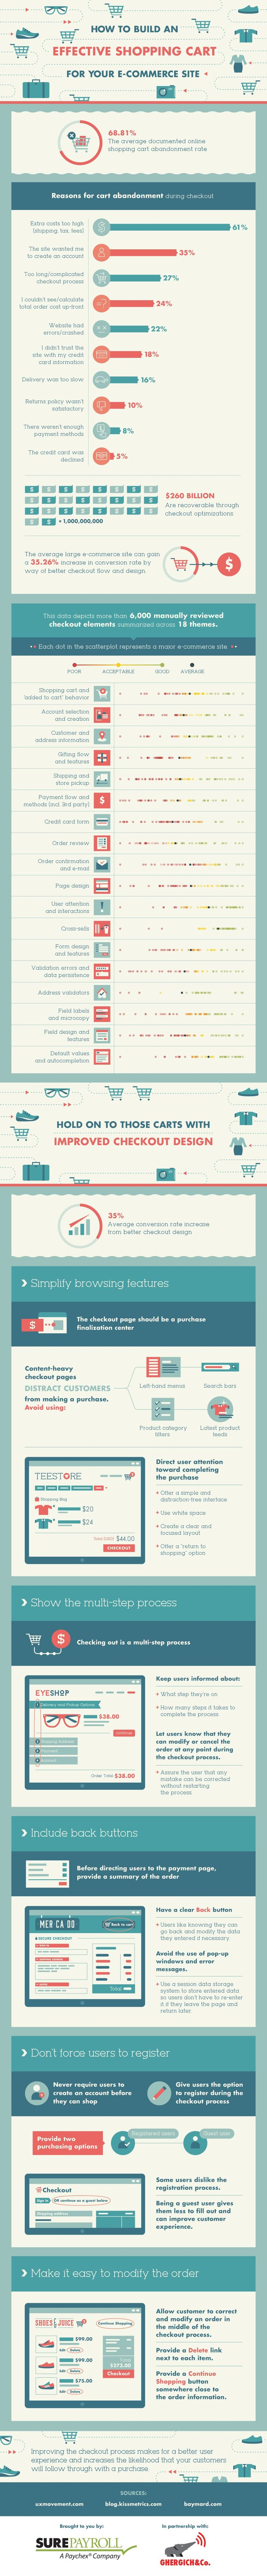 How to Build an Effective Shopping Cart for Your eCommerce Site